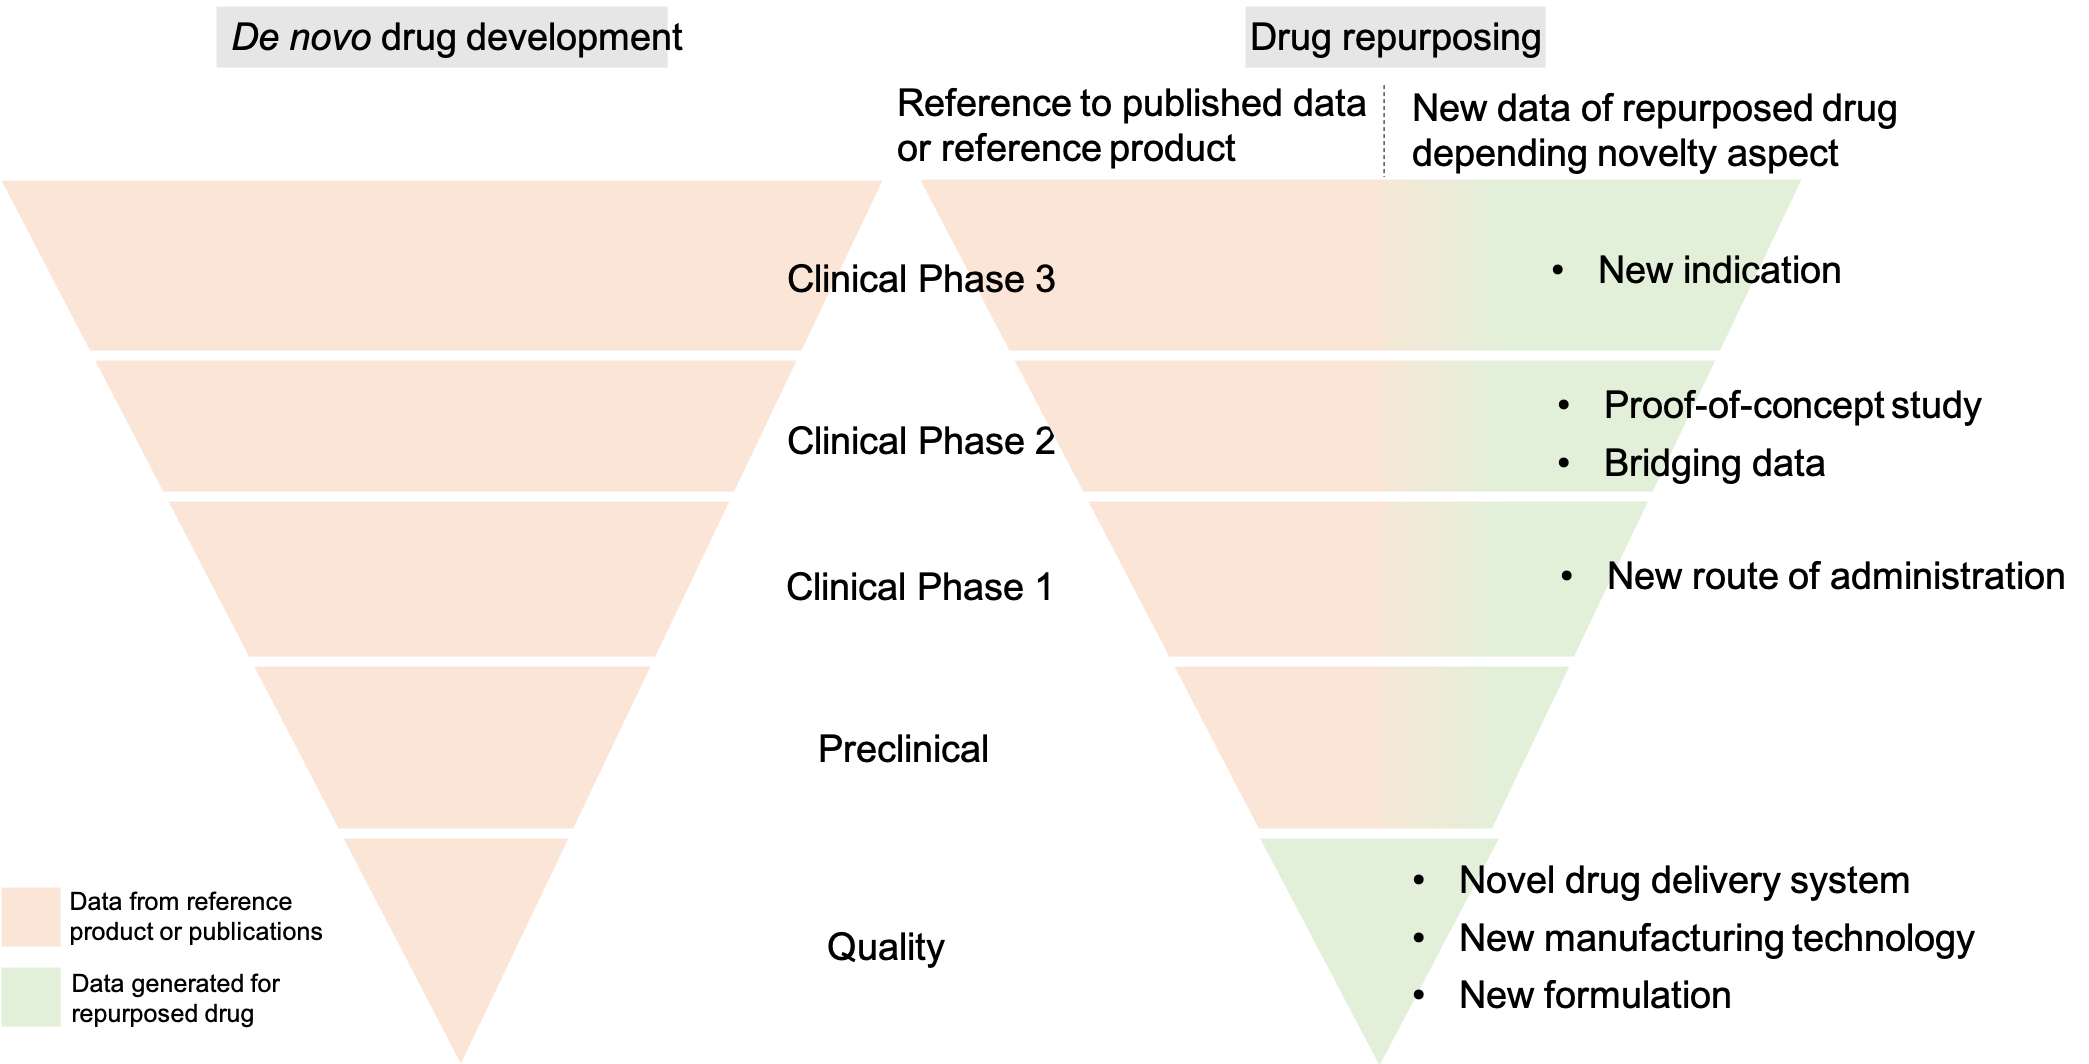 Figure 1: Data requirements for registration dossiers of repurposed drugs